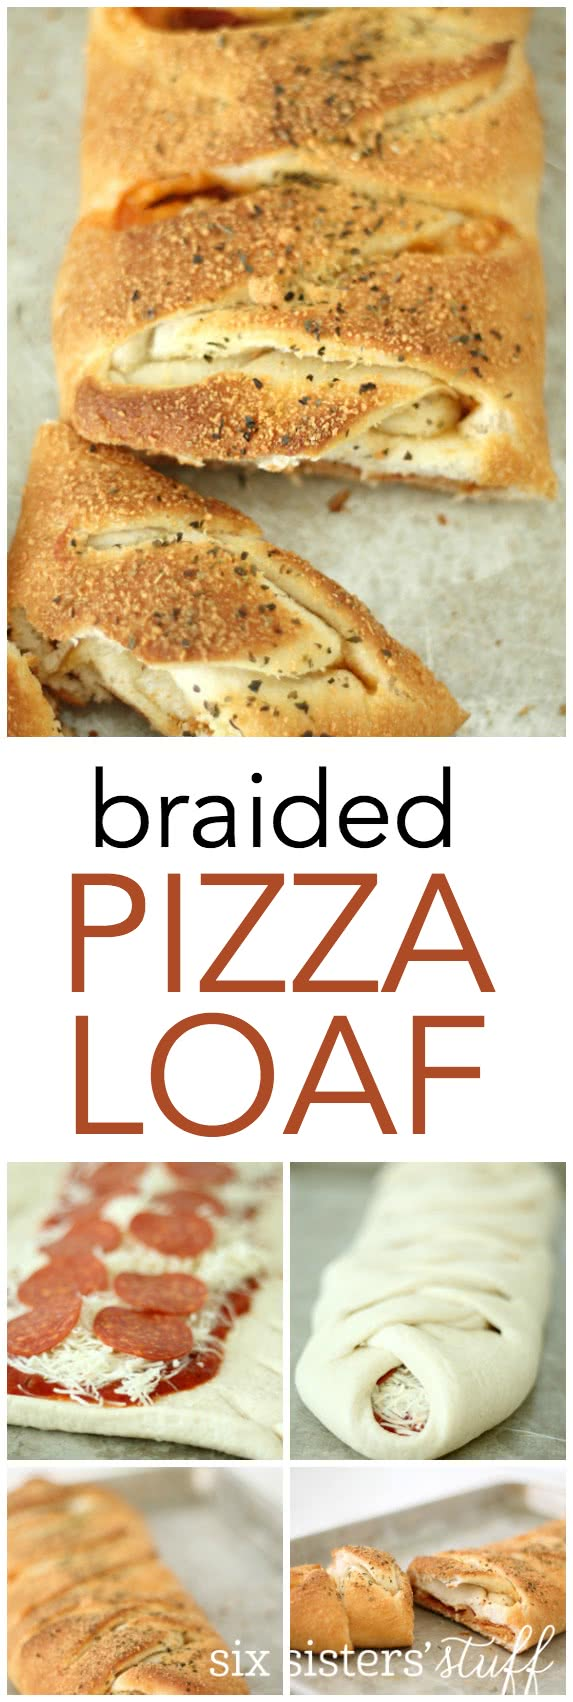 Braided Pizza Loaf Recipe